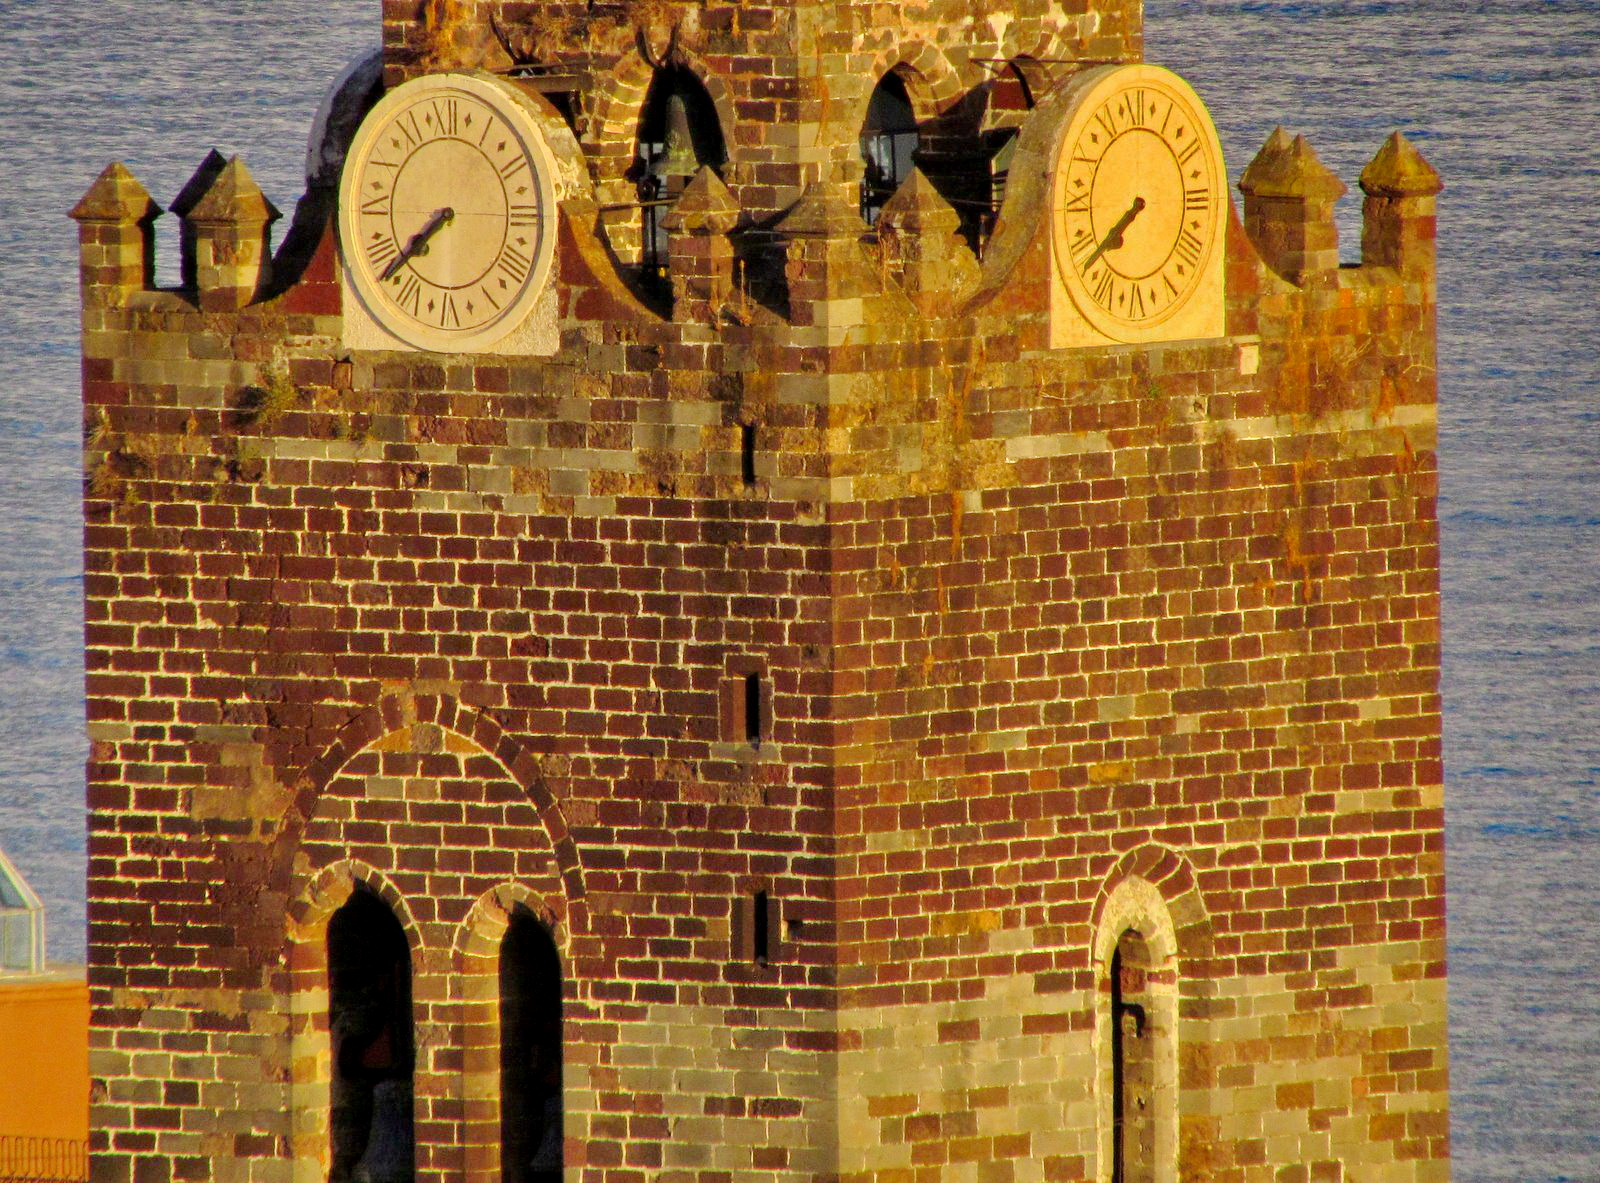 do you see two eyes in cathedral tower?